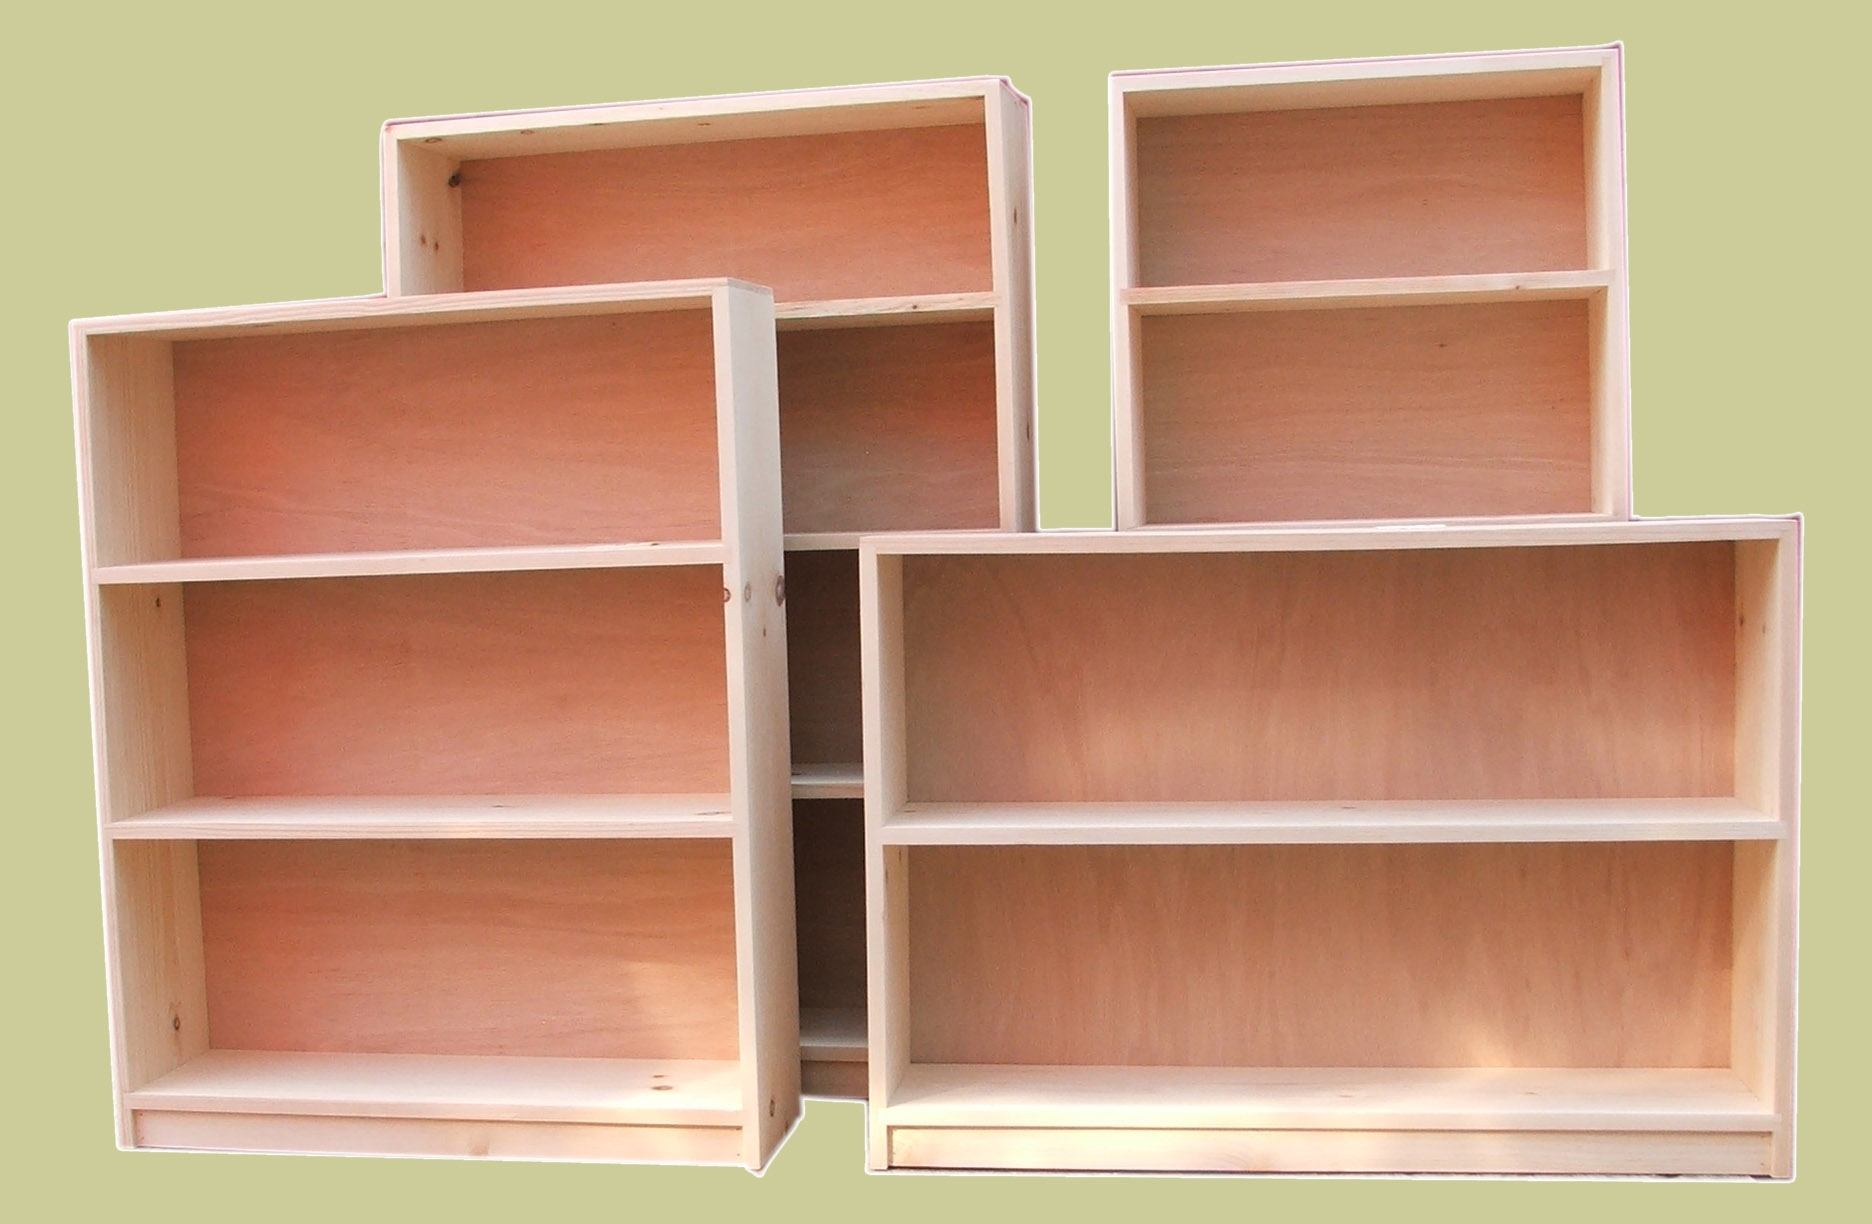 Pine Bookcases Intended For Well Known Pineses Or Bookshelves 14424pinese Plans And Cabinets King Size (View 3 of 15)